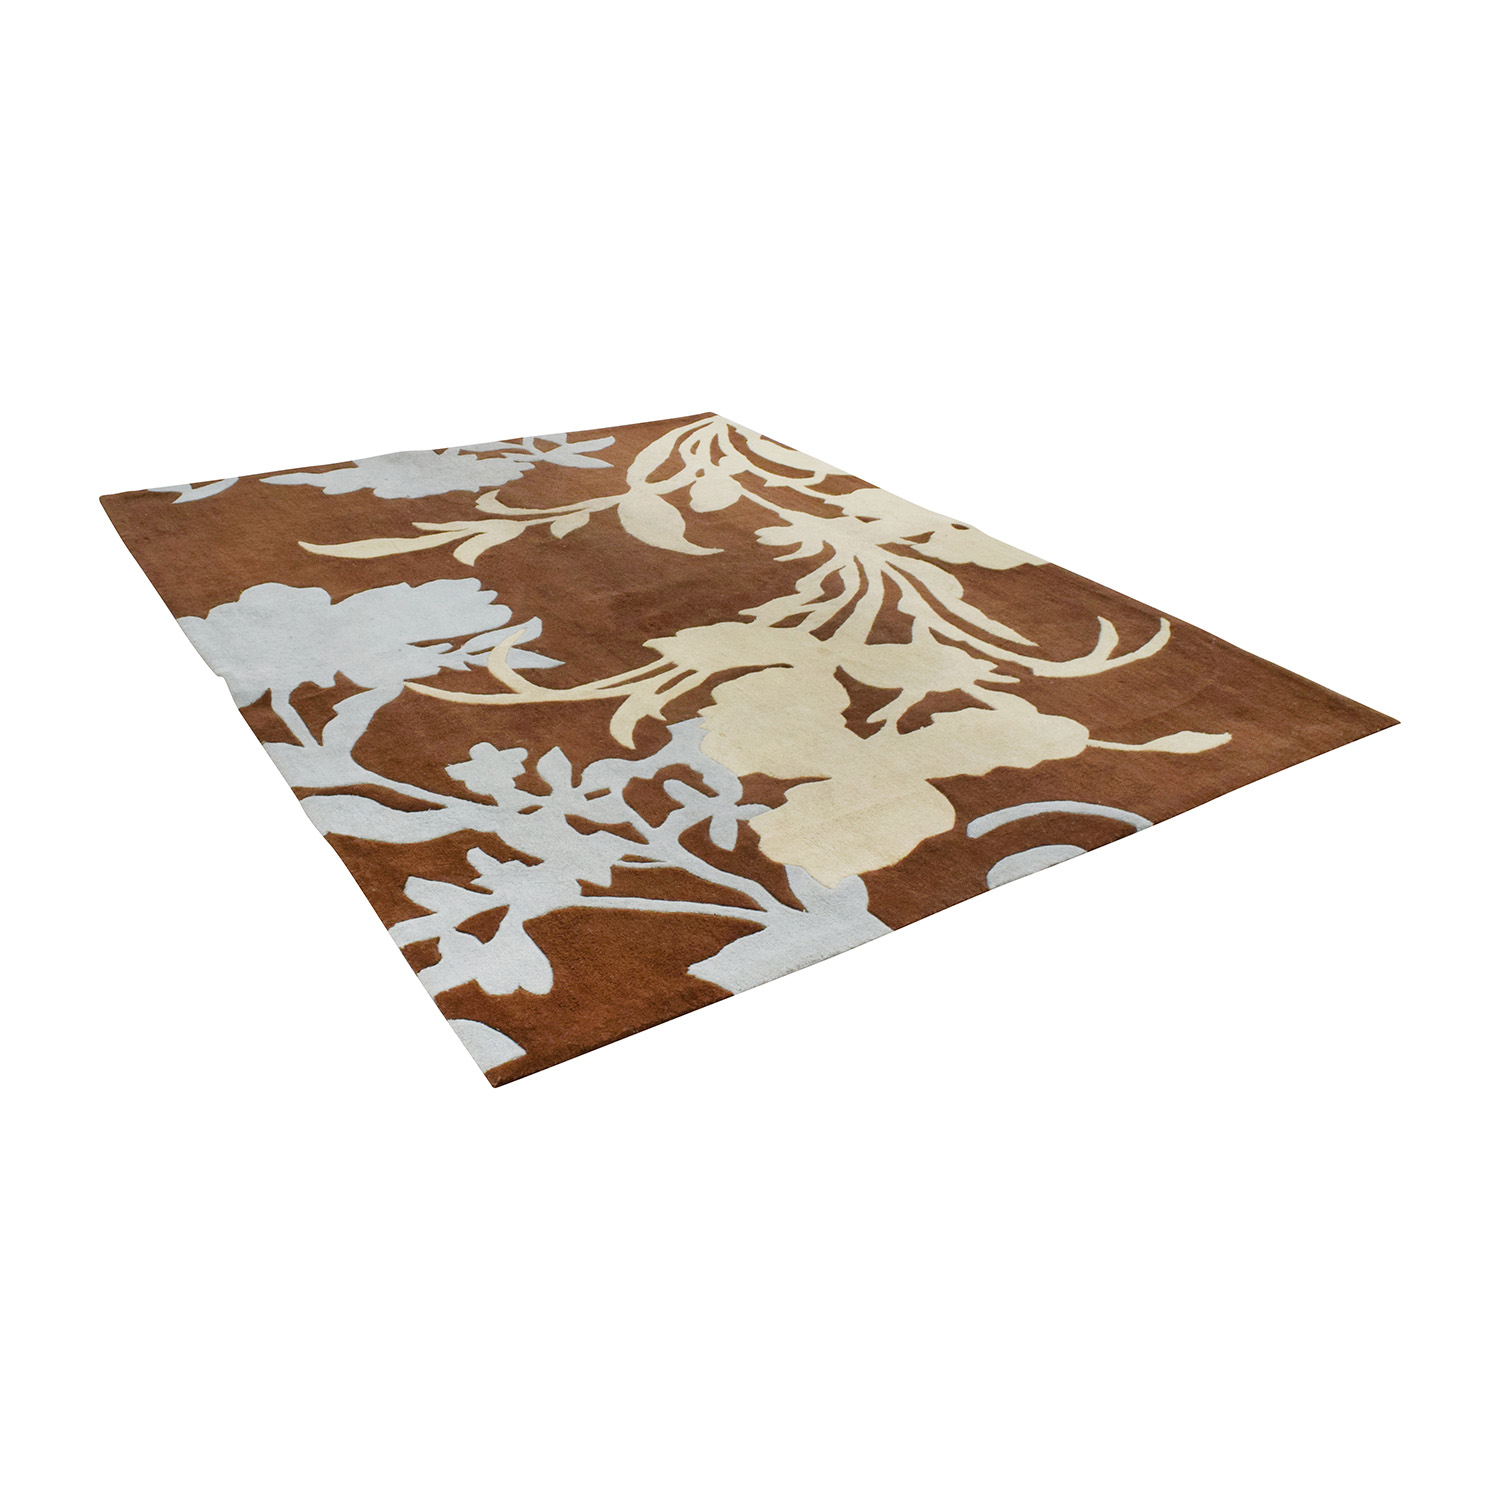 NuLOOM Hand-Hooked Brown Wool Rug / Decor